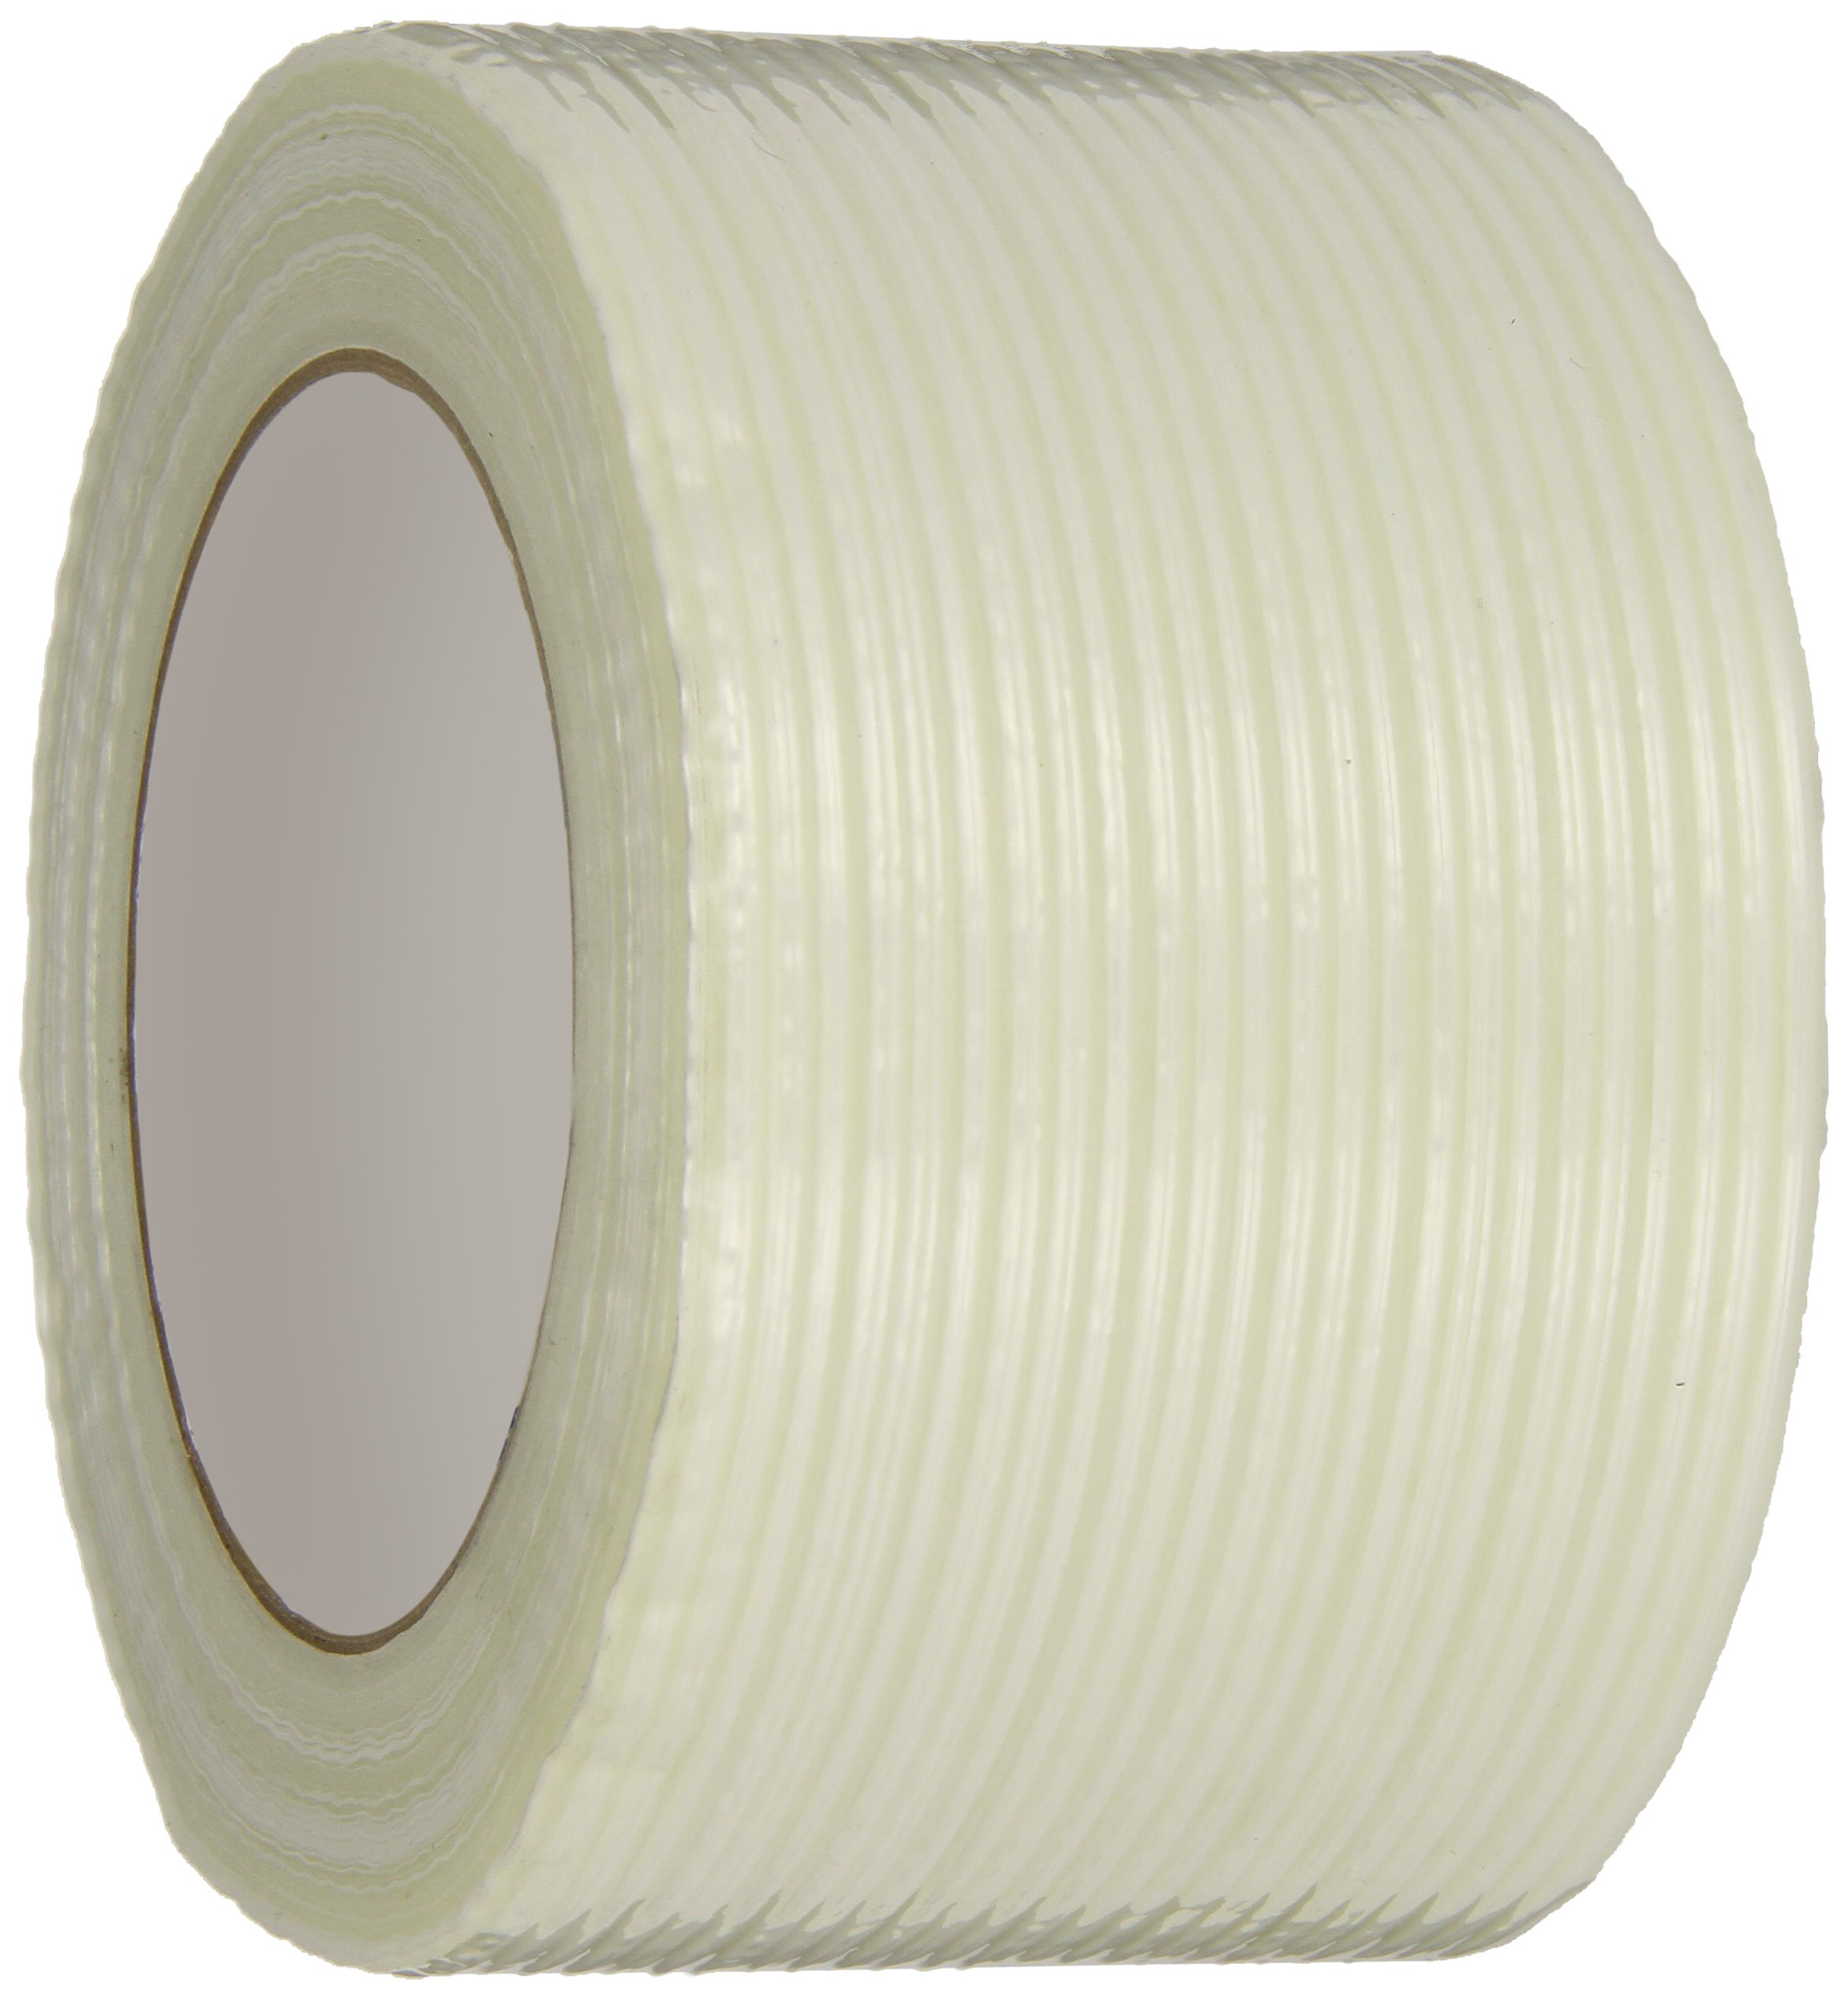 Intertape Polymer Group RG300 110 lbs/in Fiberglass Reinforced BOPP Backed Filament Tape, 72mm x 54.8M, Case of 16 Rolls